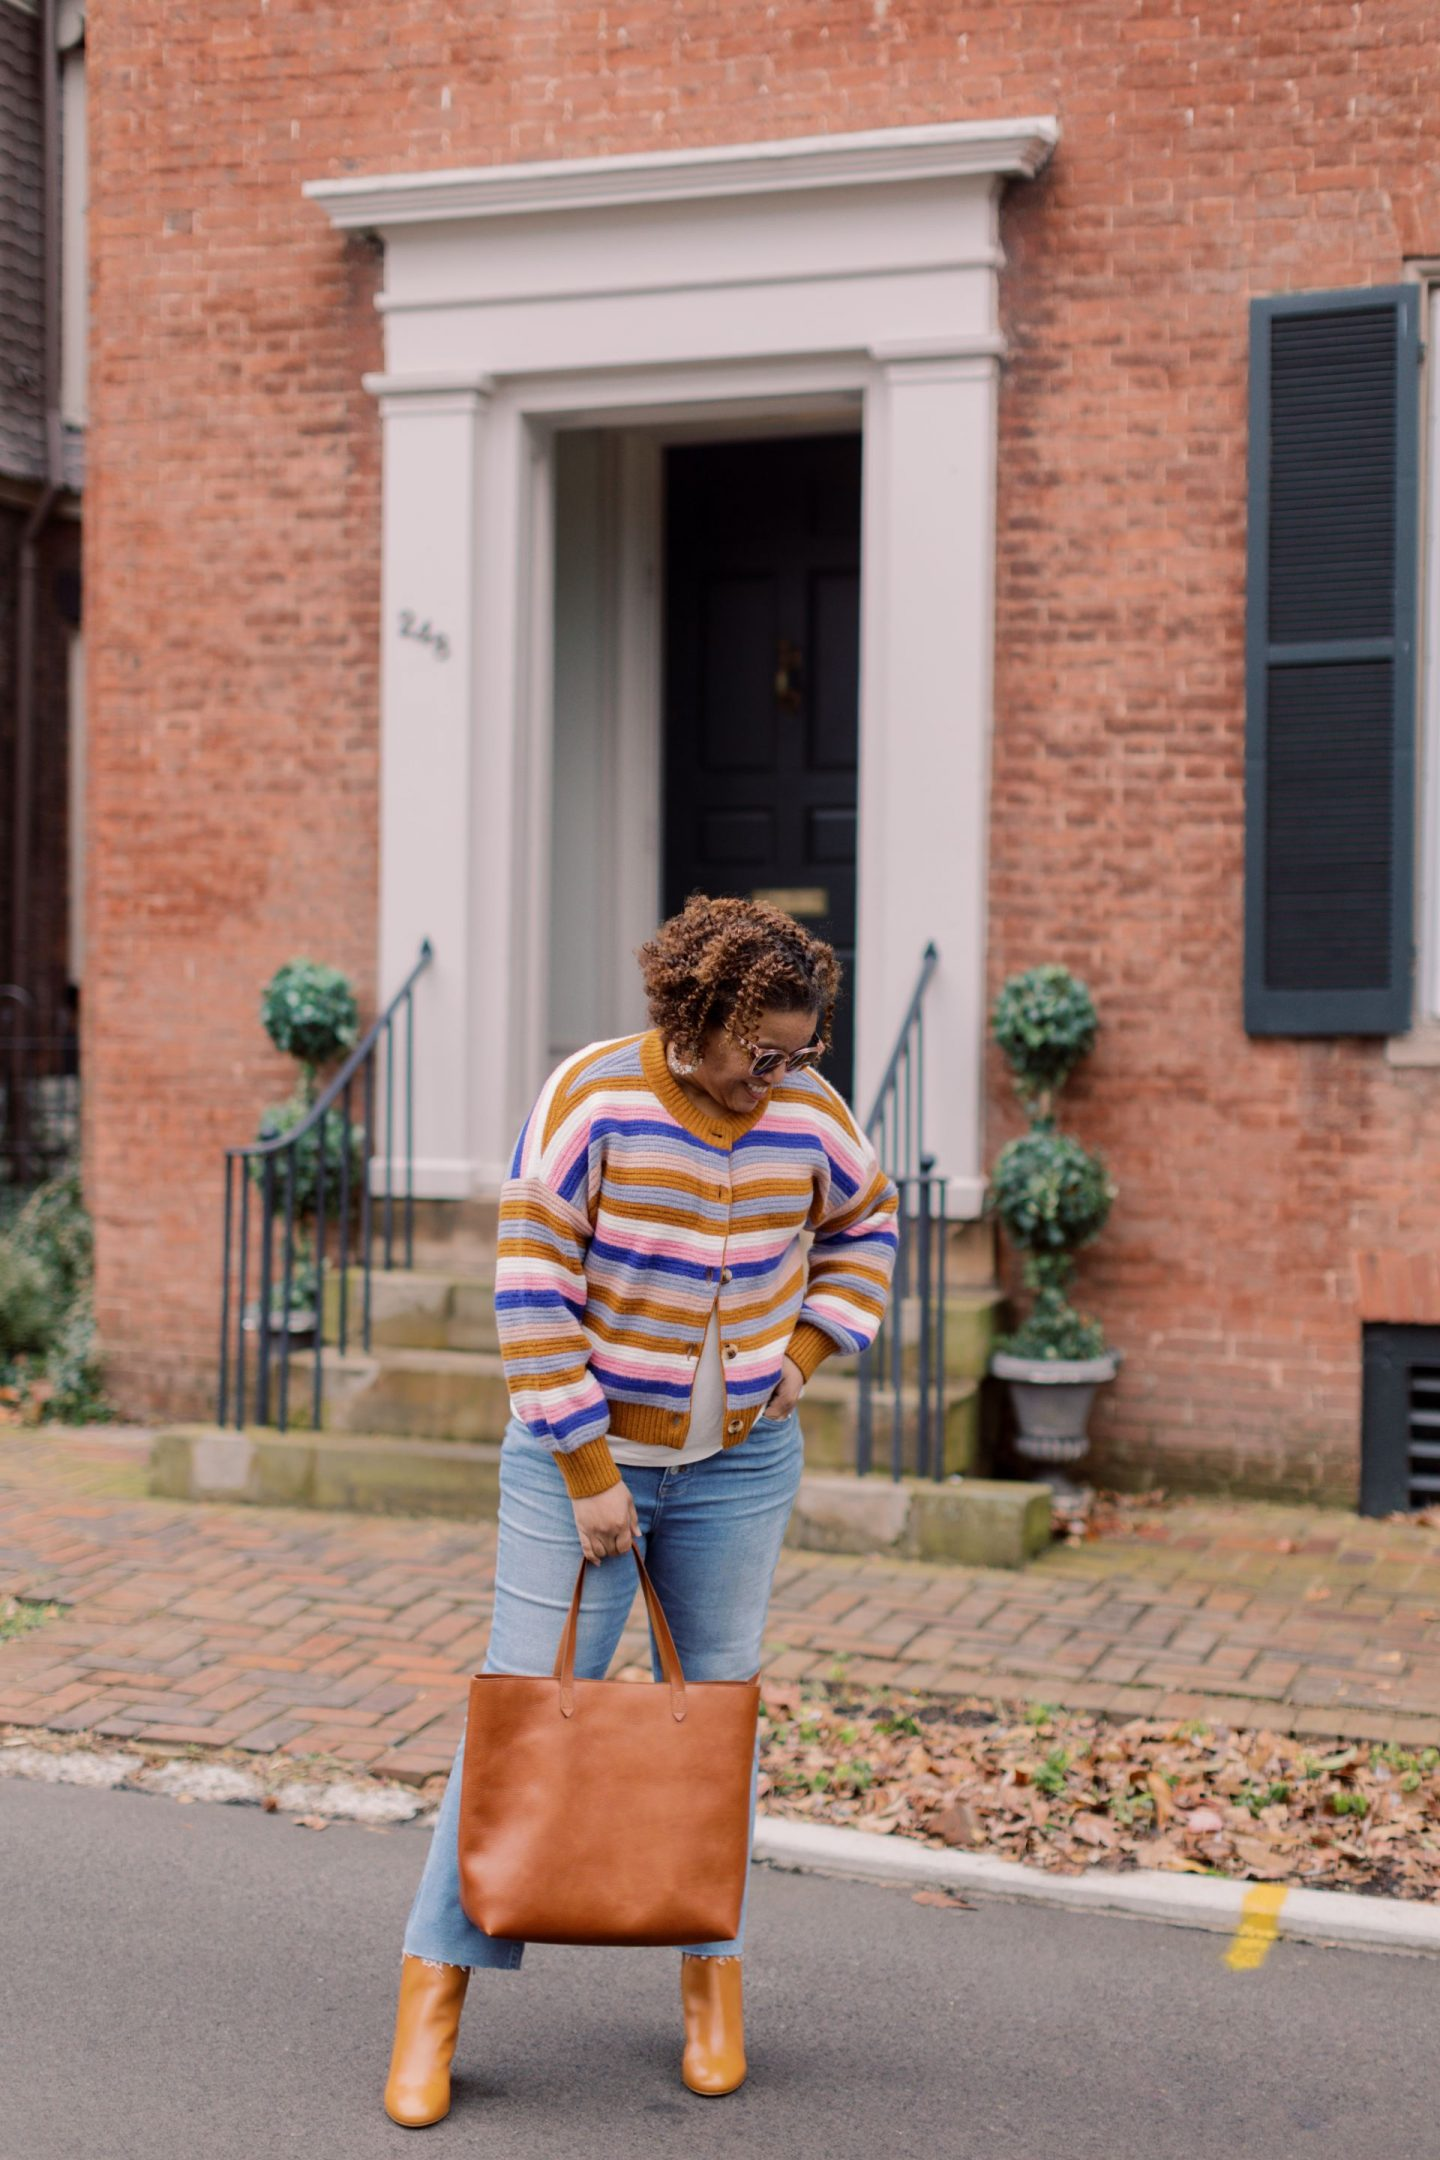 Madewell New Arrivals by popular Kentucky fashion blog, Really Rynetta: image of a woman standing outside in front of a red brick building and wearing a Madewell Striped Springview Cardigan Sweater in Coziest in Yarn, Madewell bootcut jeans, Madewell ankle boots, and holding a brown leather tote.